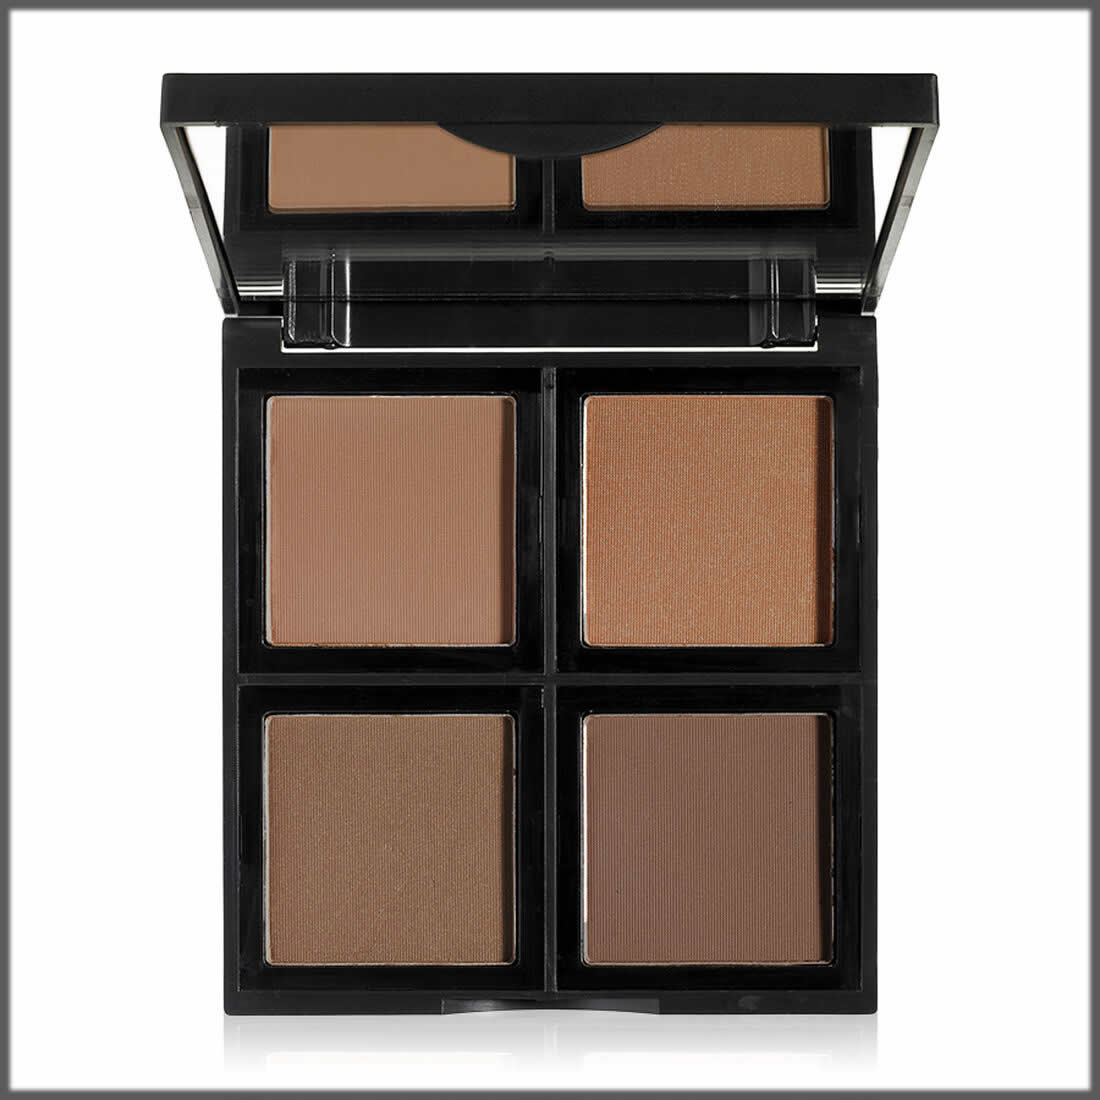 Must Have Makeup Products includes bronzer shades